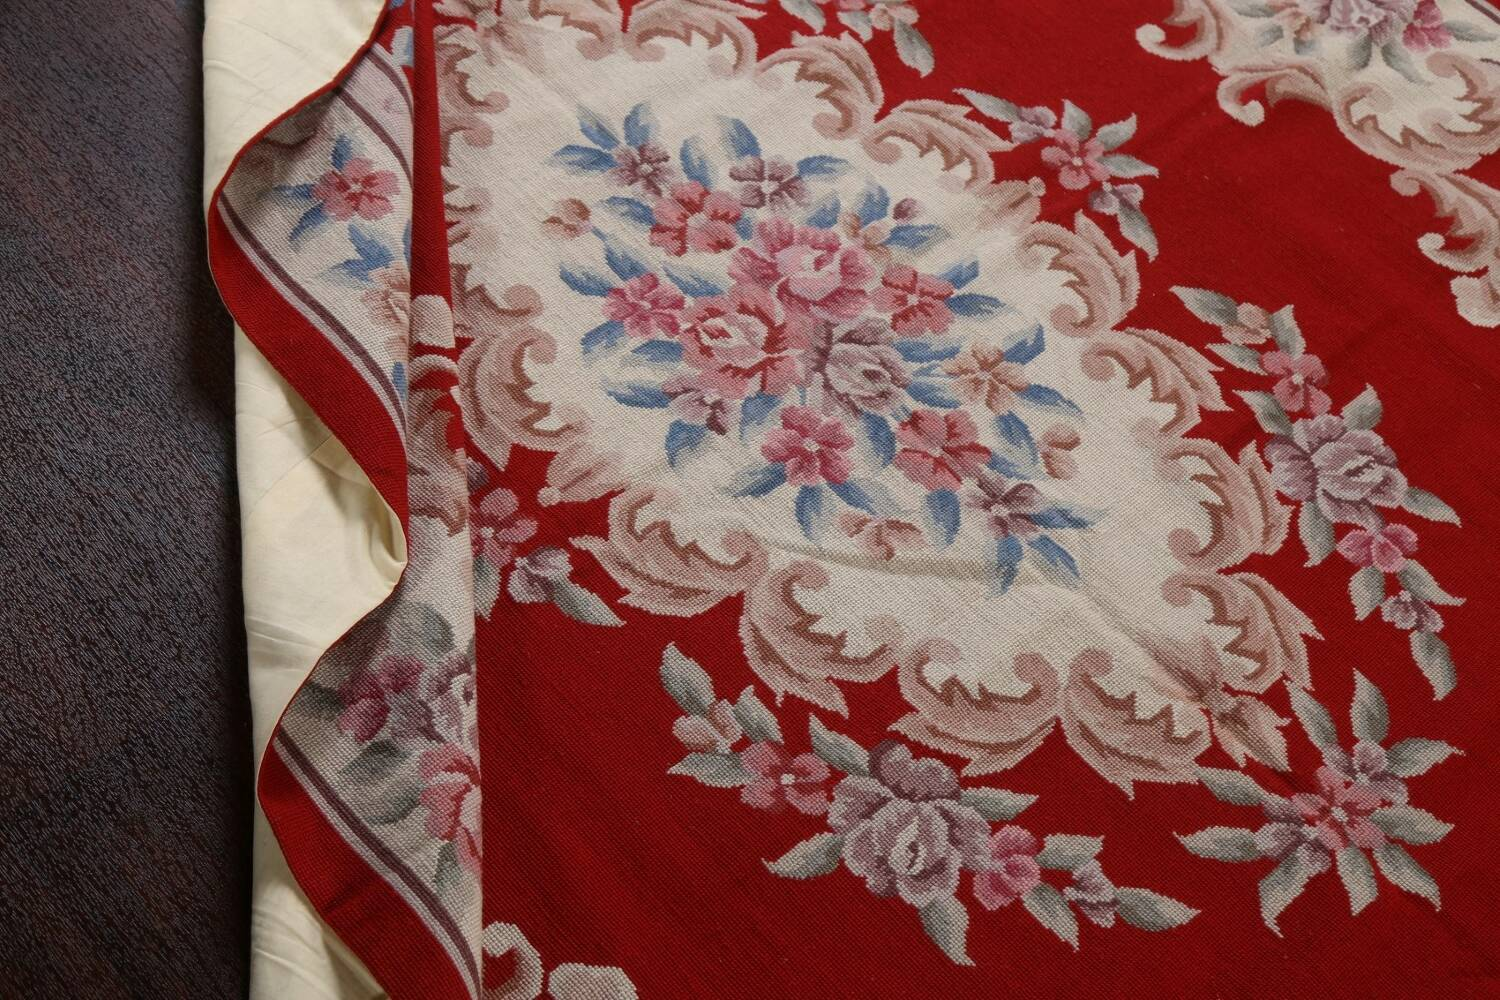 Floral Red Aubusson Chinese Wool Area Rug 5x9 image 18